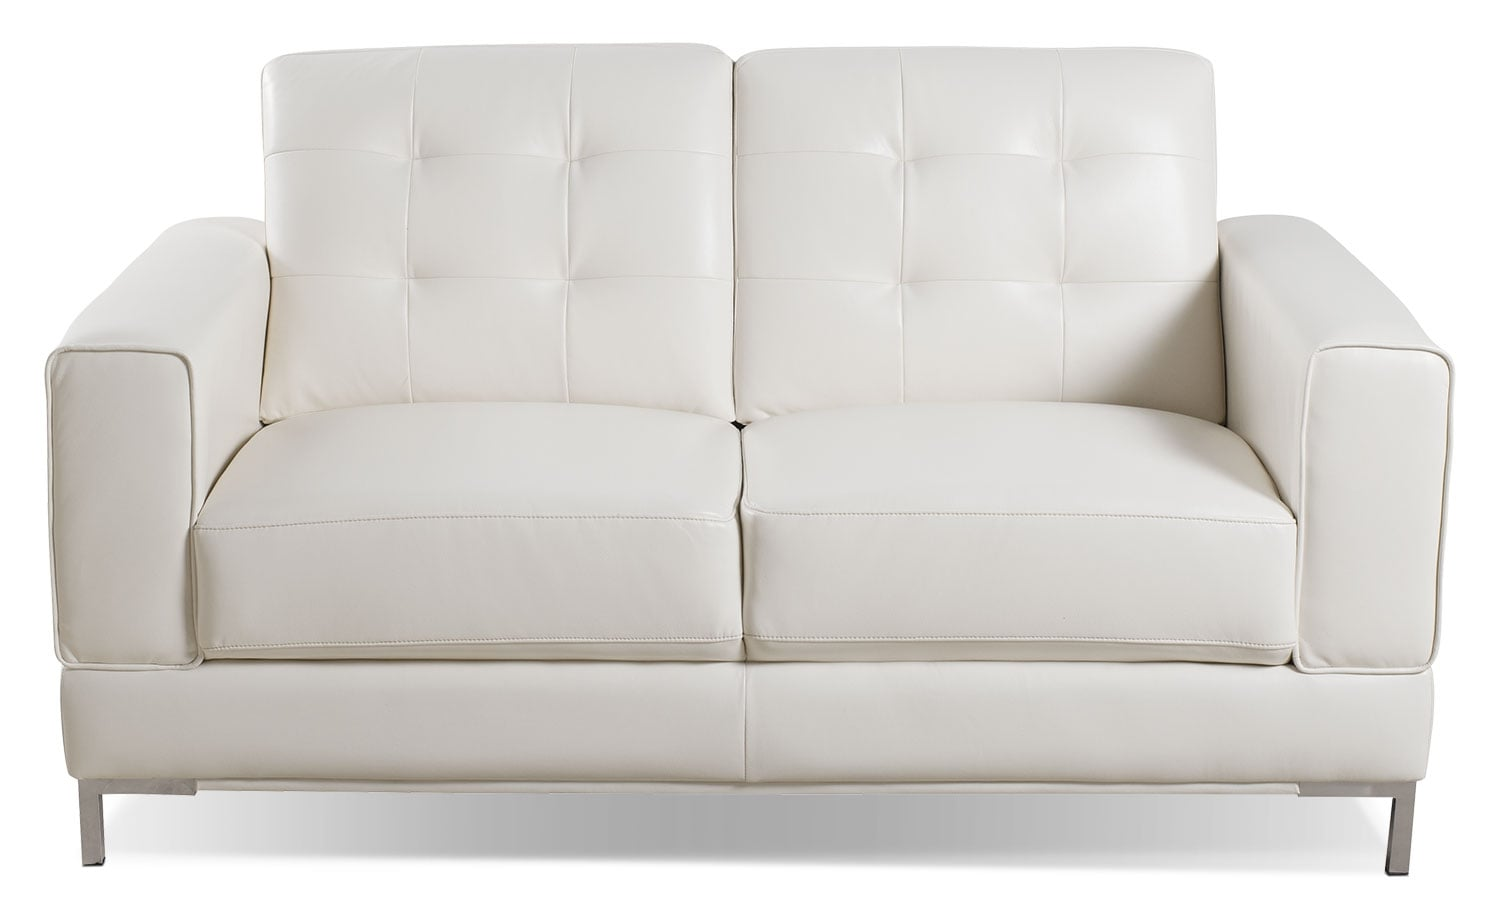 Living Room Furniture - Myer Leather-Look Fabric Loveseat - Cream